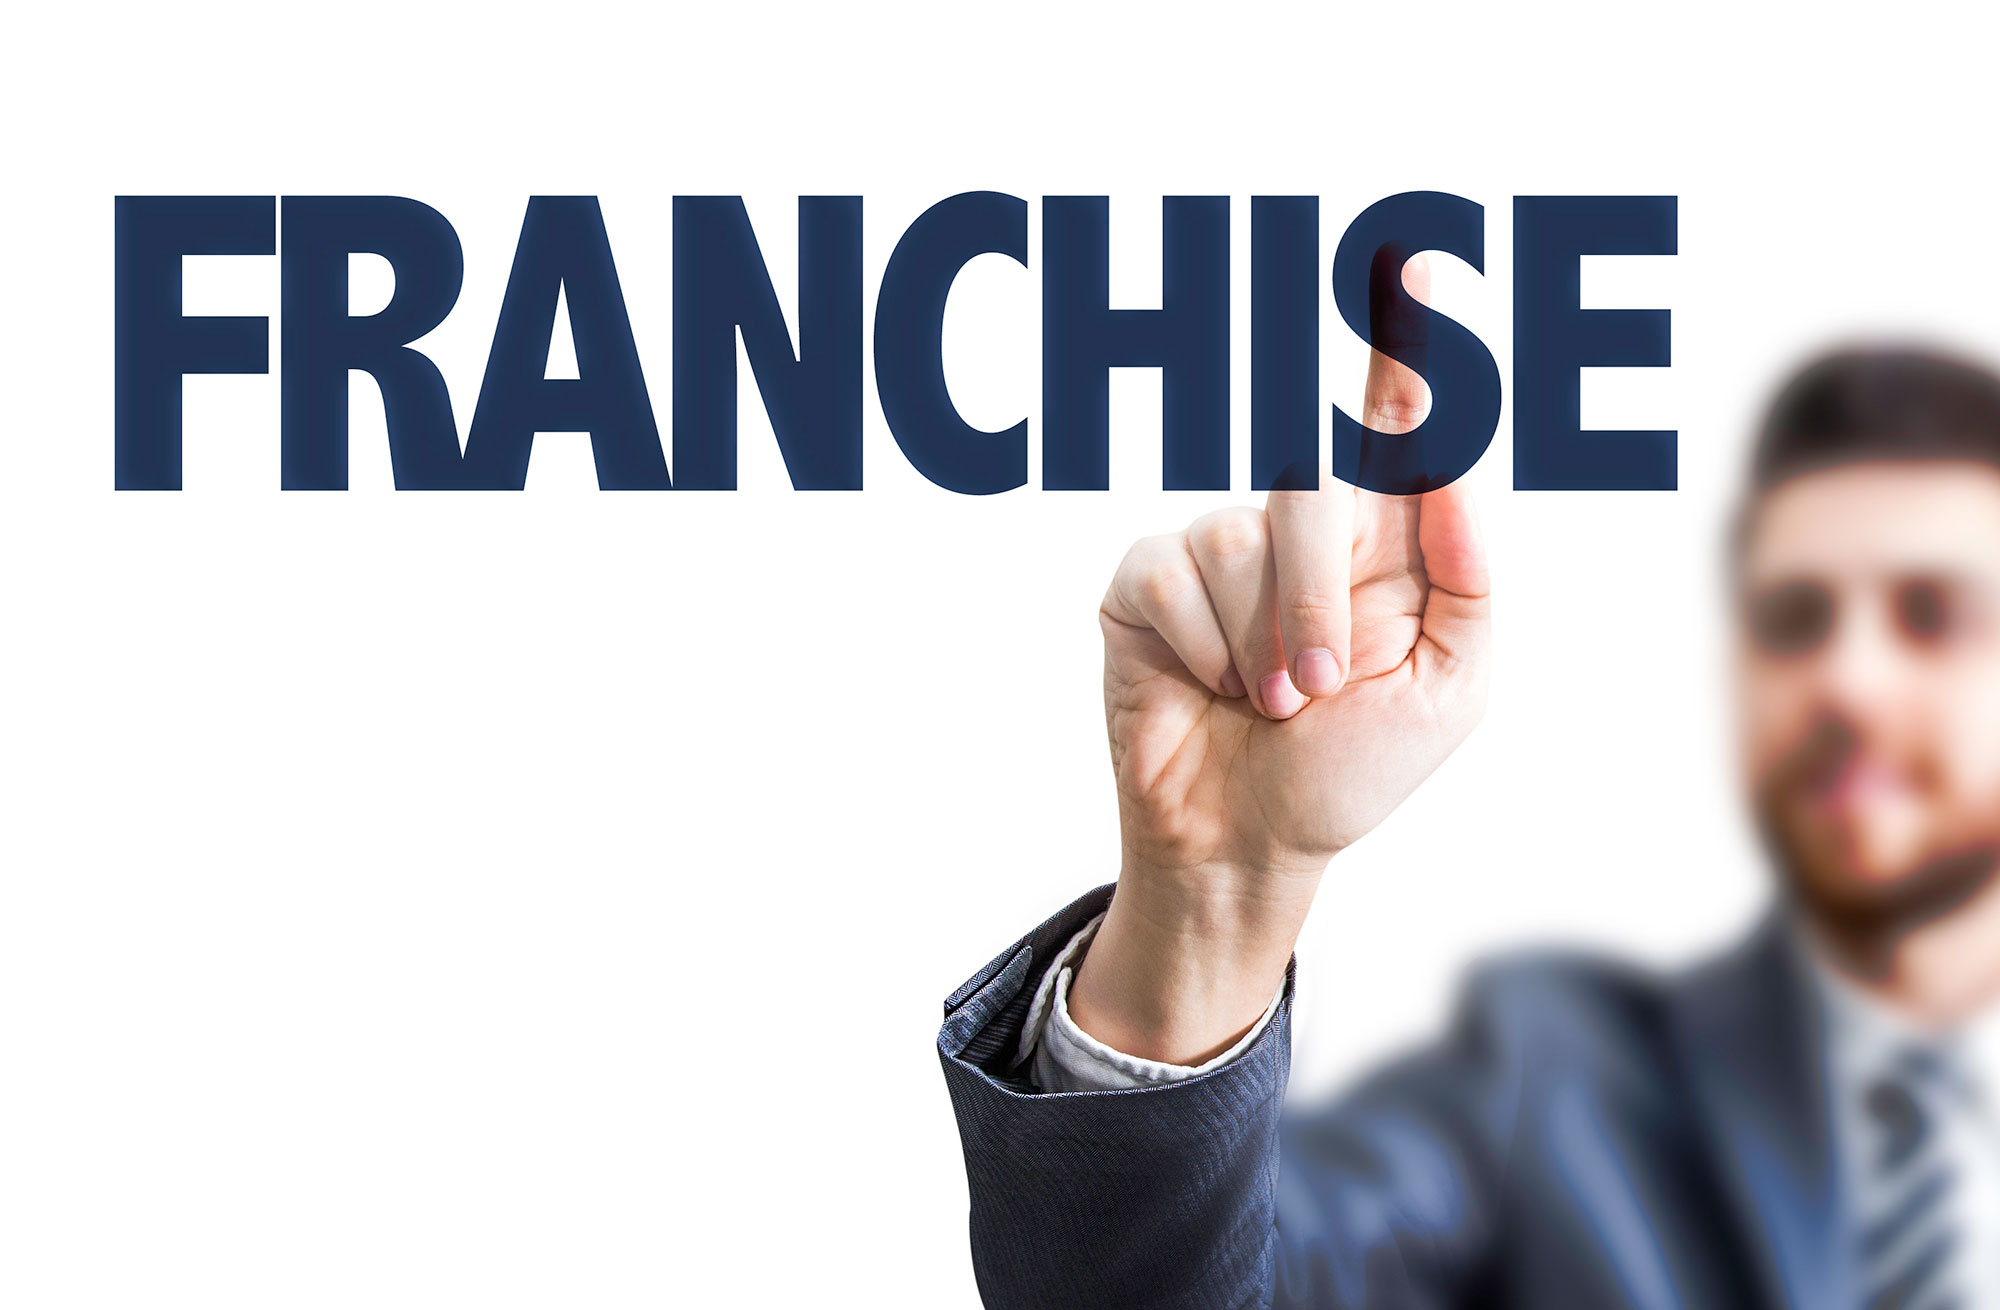 franchises to invest in 2019